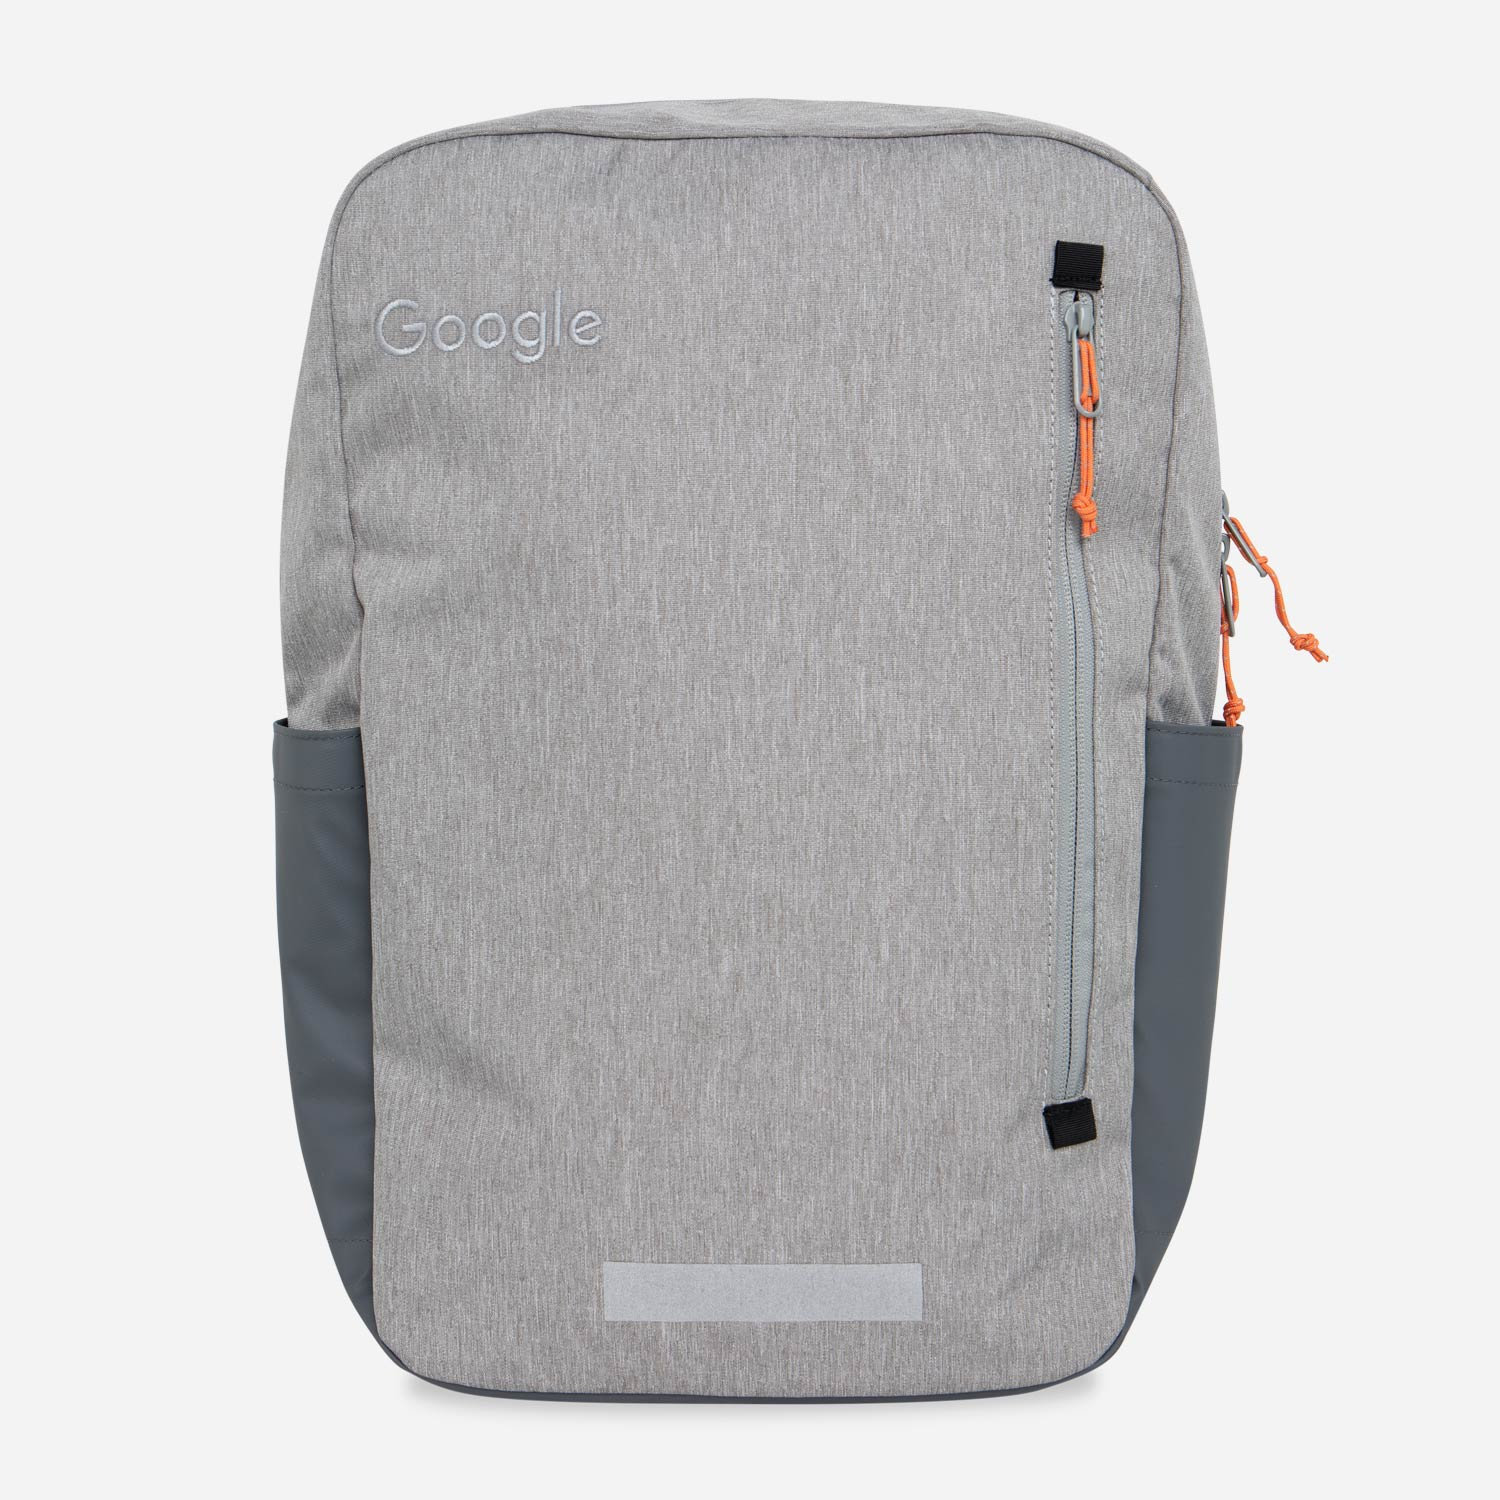 302f481bb622 Tap to expand. This Incognito Zip Pack ...